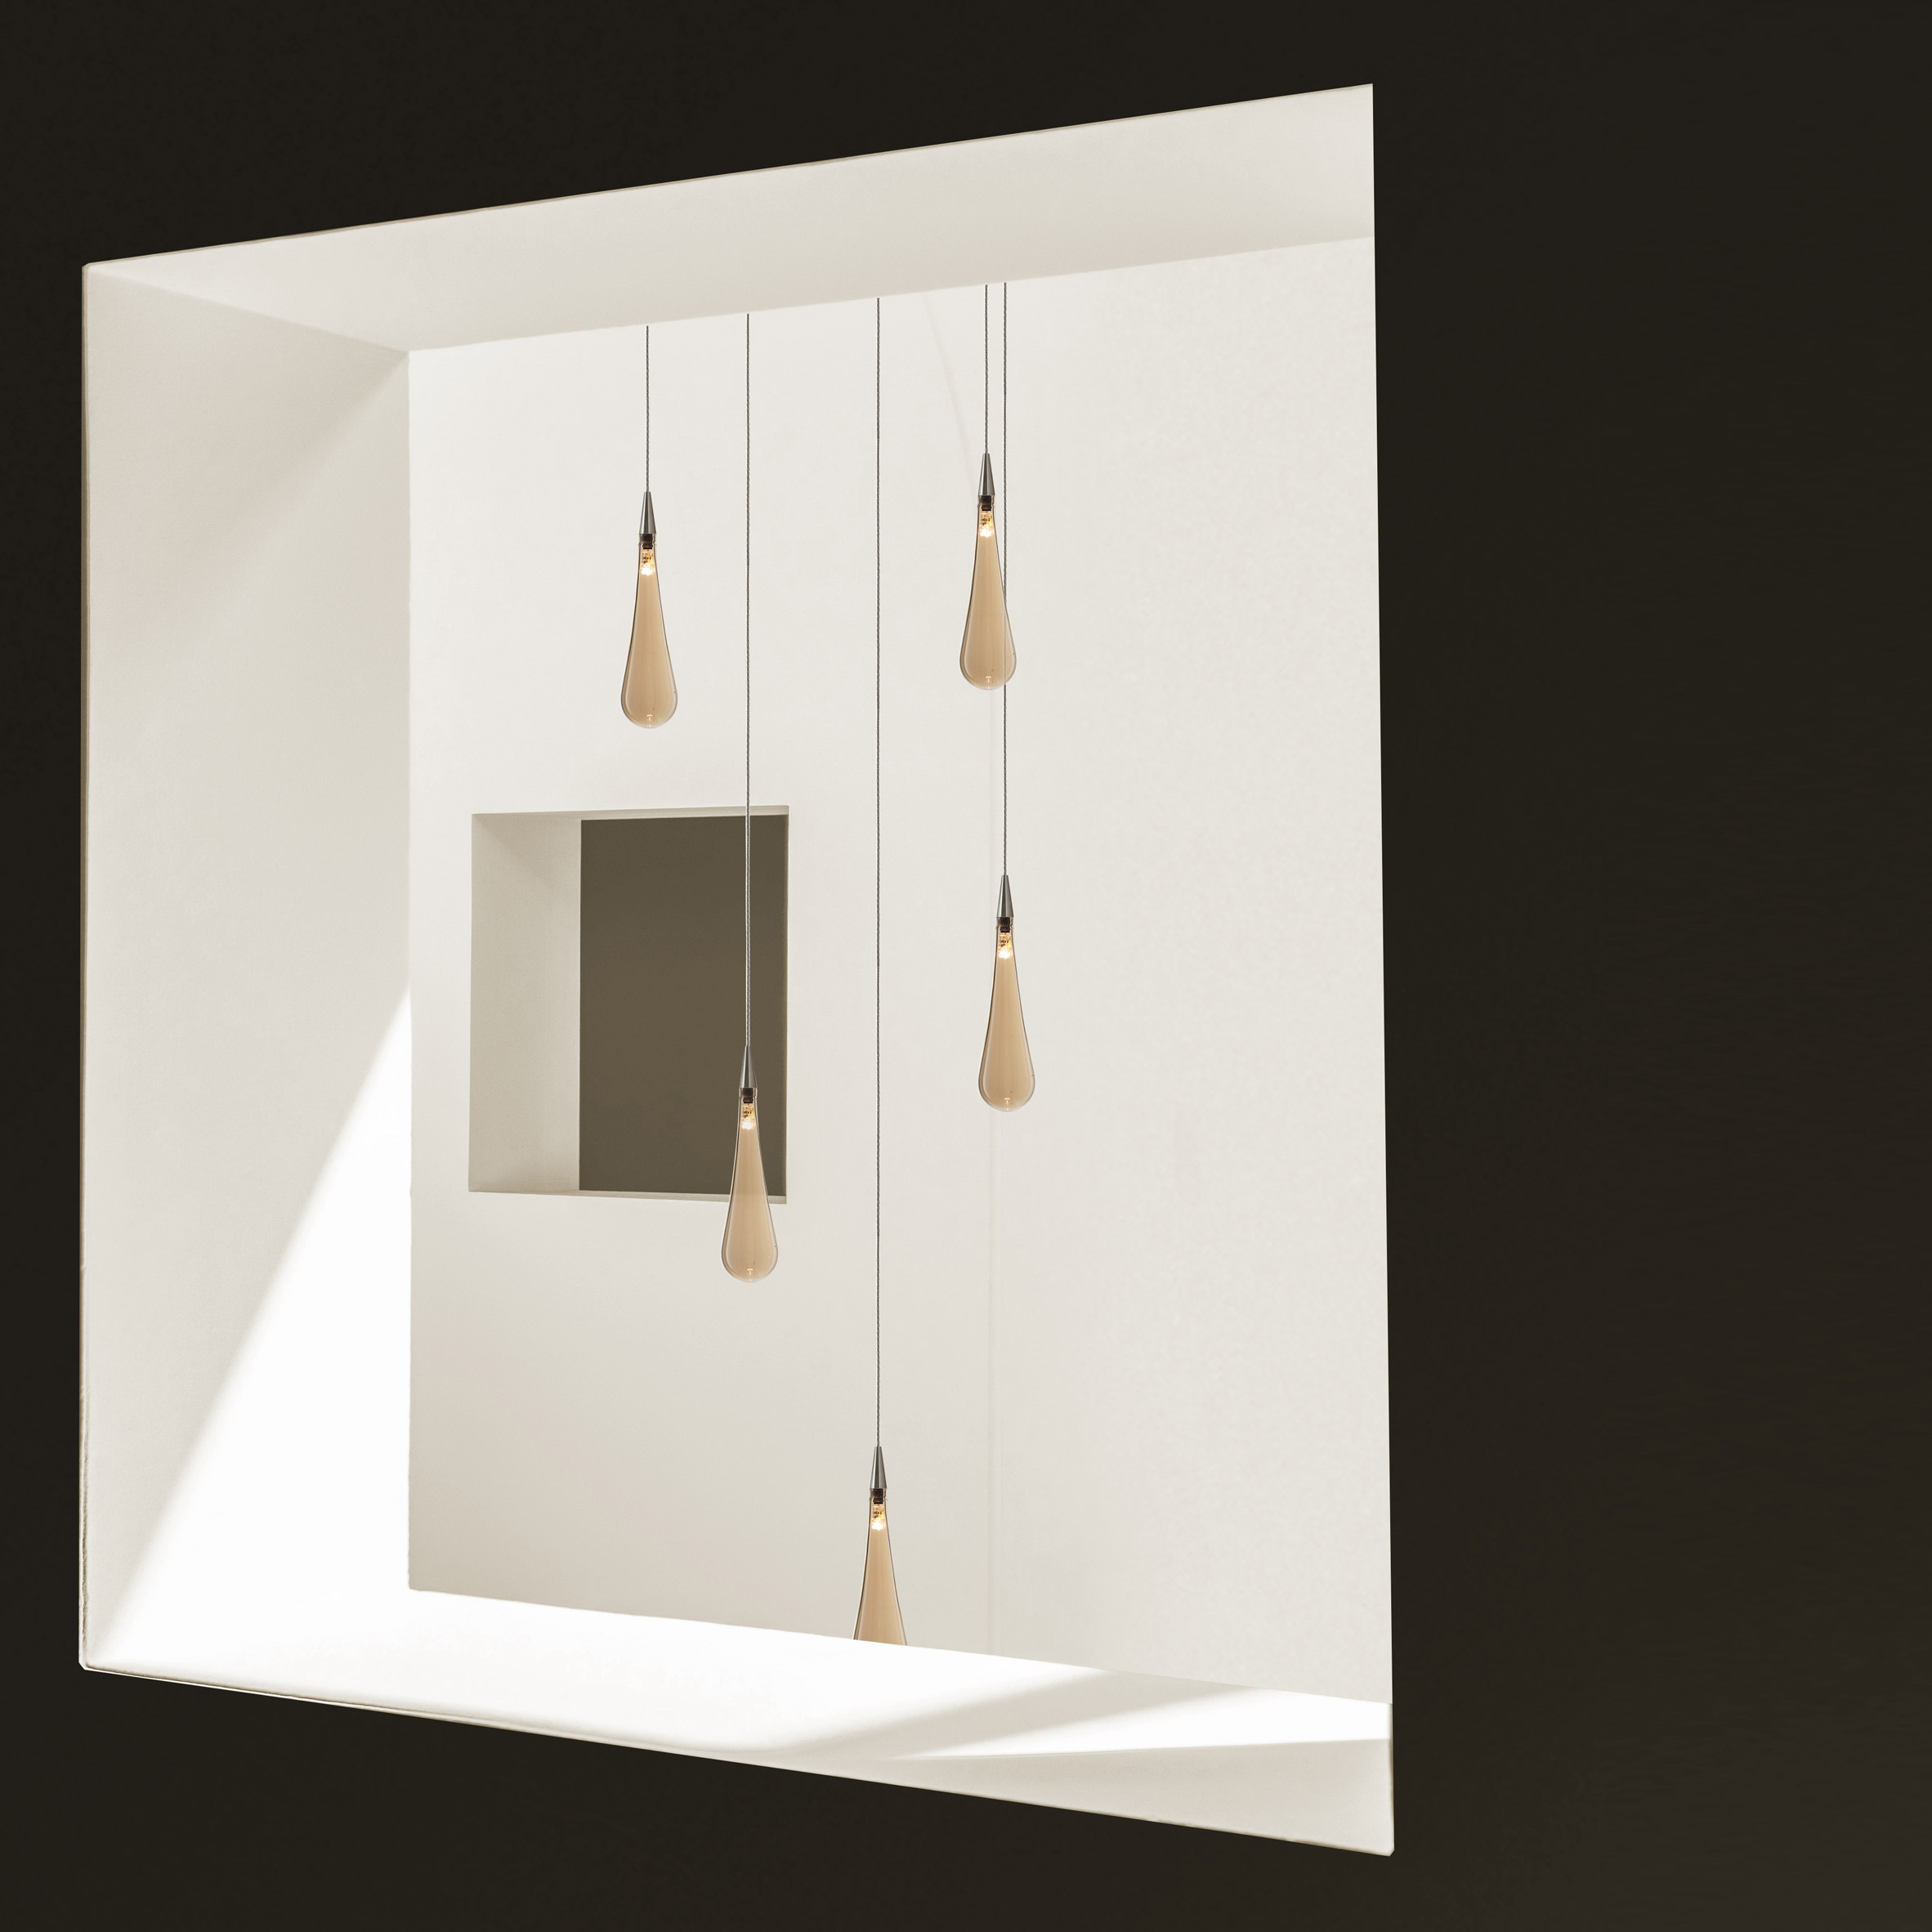 Raindrop collection by Shakúff